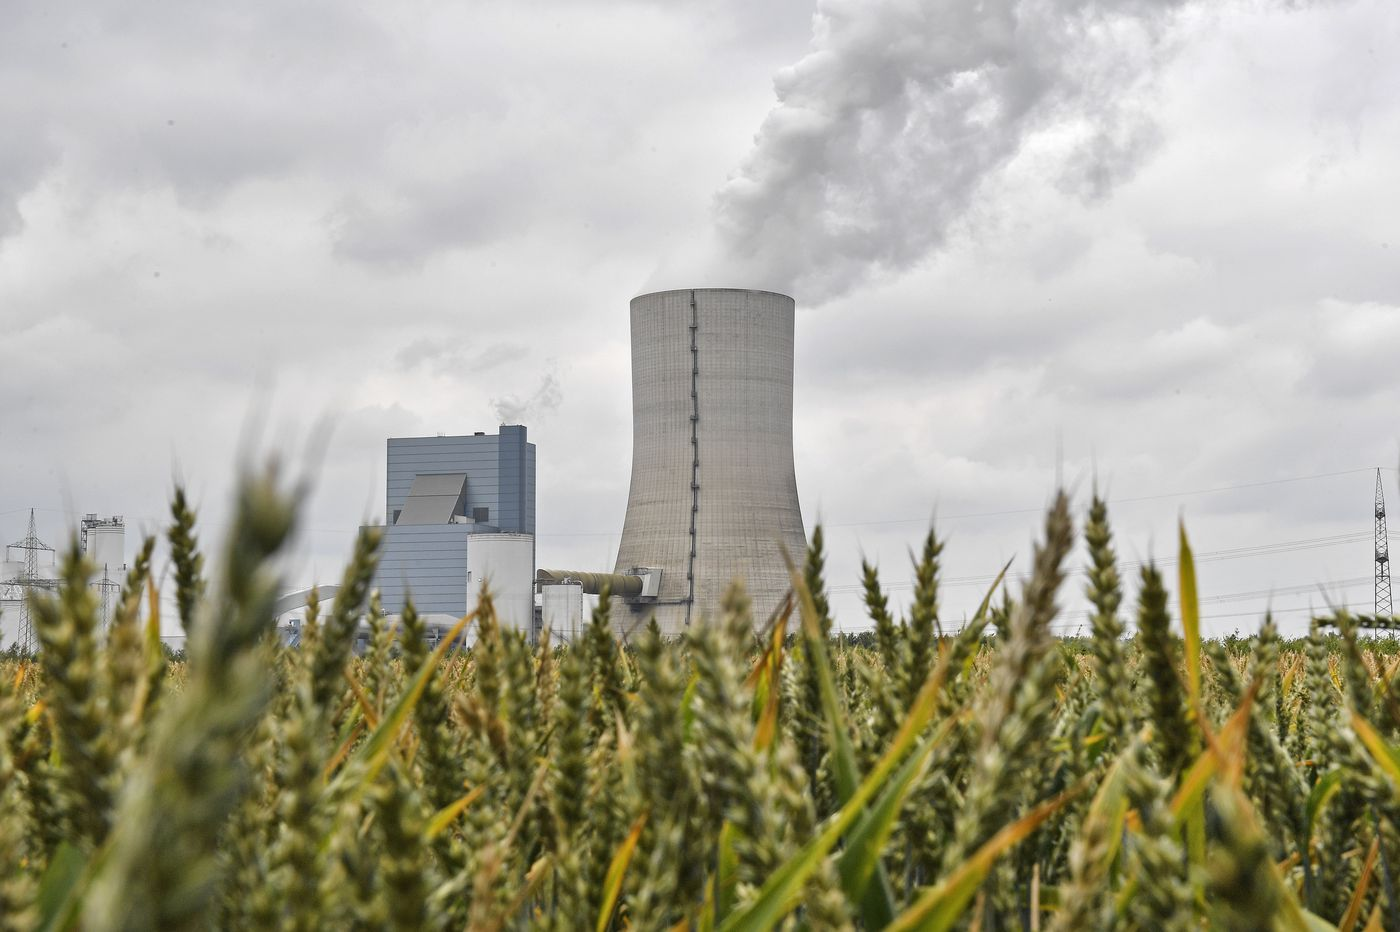 Germany is first major economy to phase out coal and nuclear energy